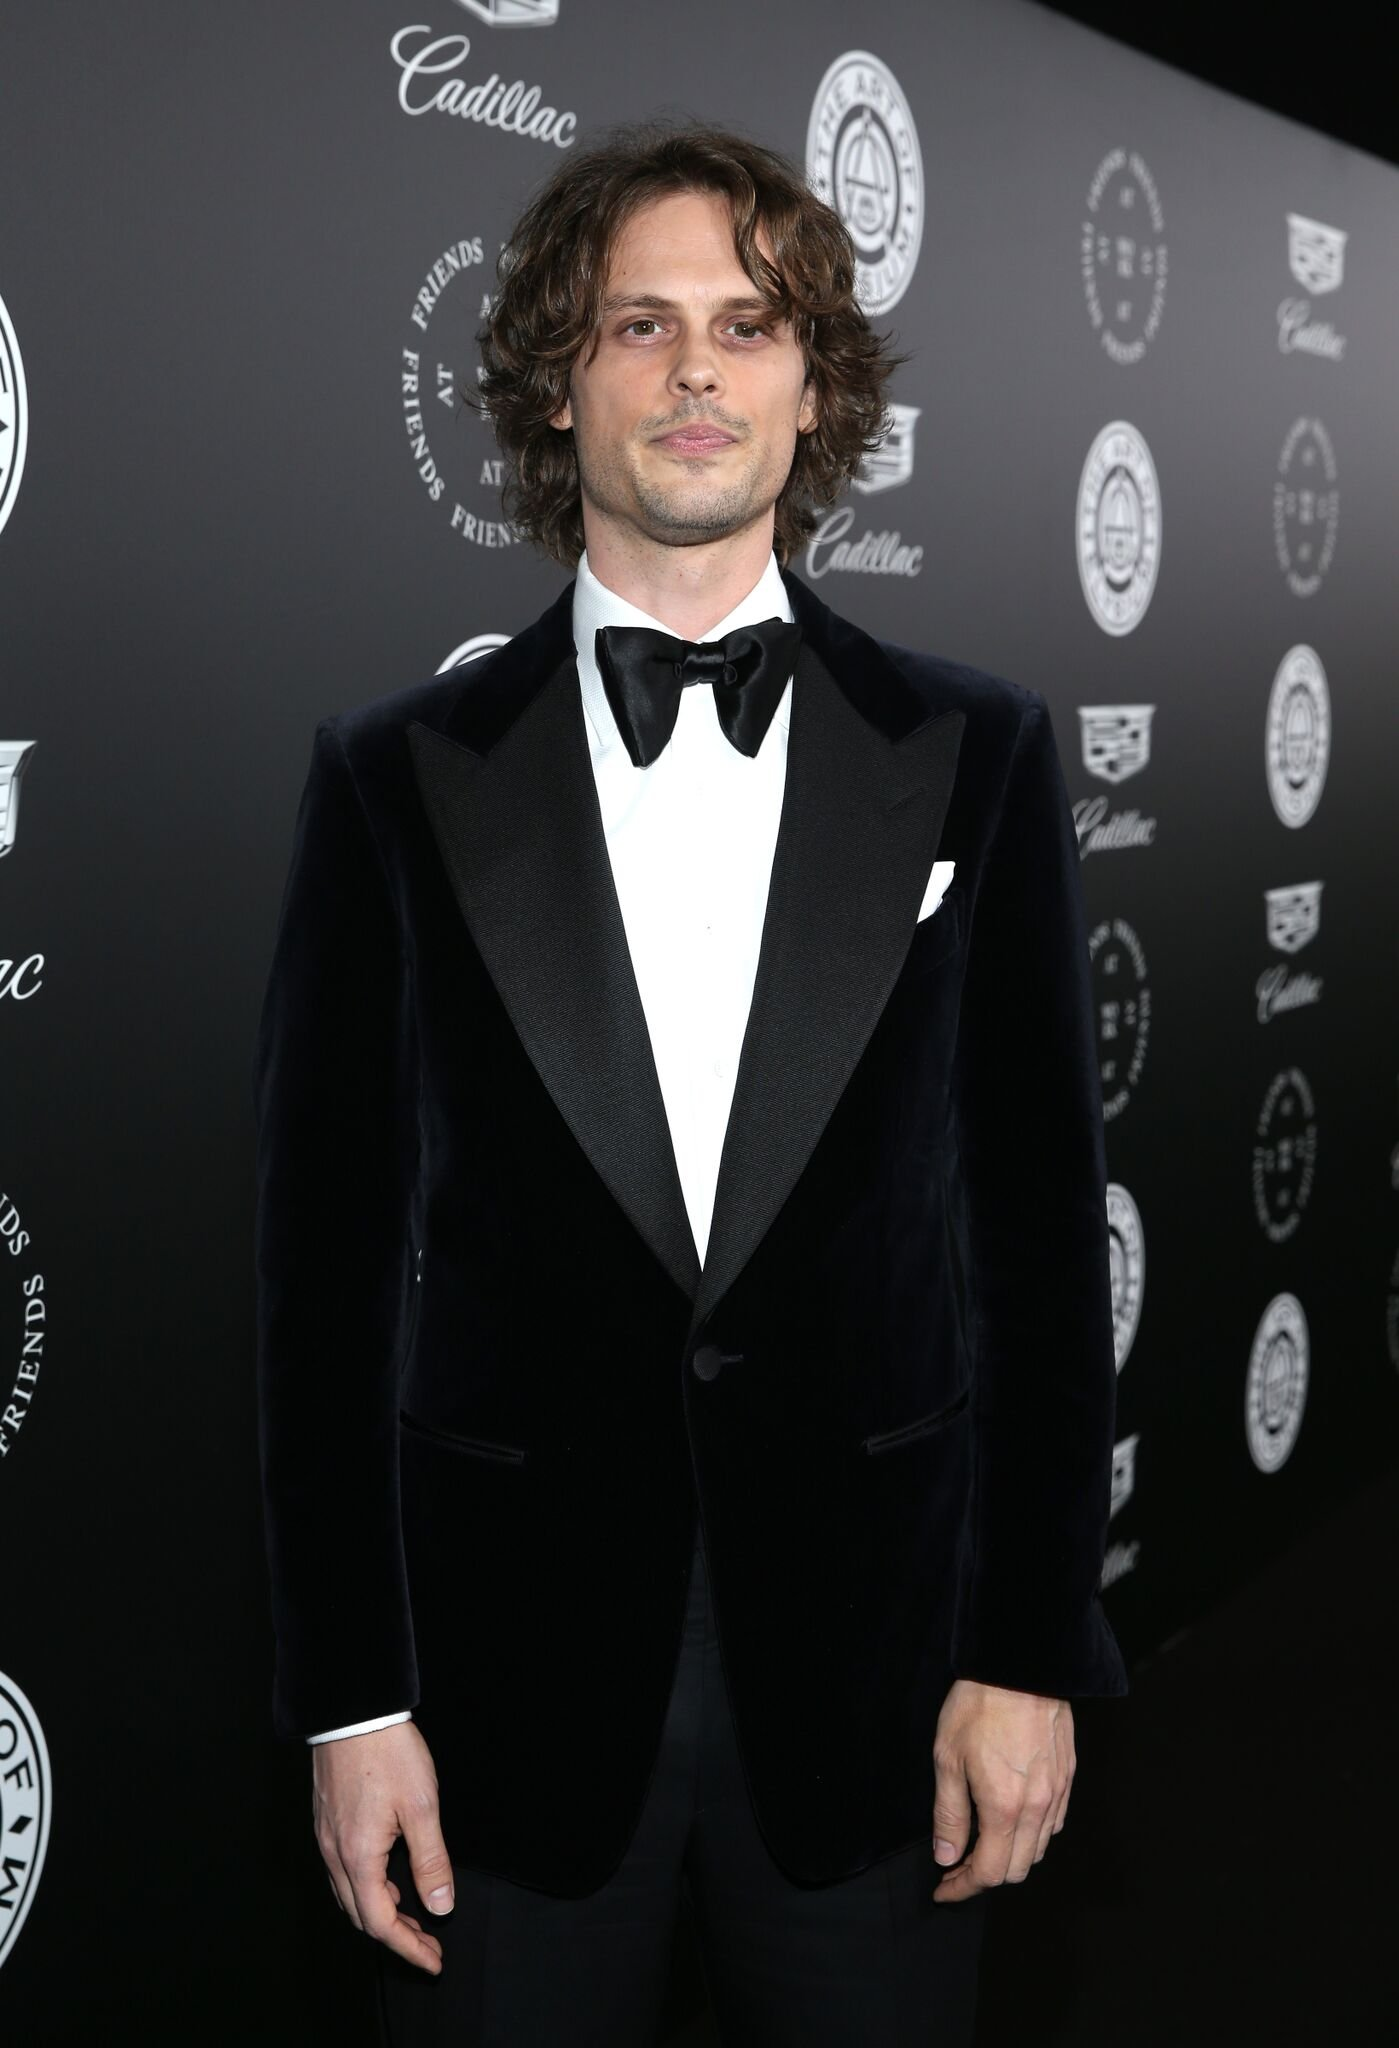 Matthew Gray Gubler attends The Art Of Elysium's 11th Annual Celebration | Getty Images / Global Images Ukraine